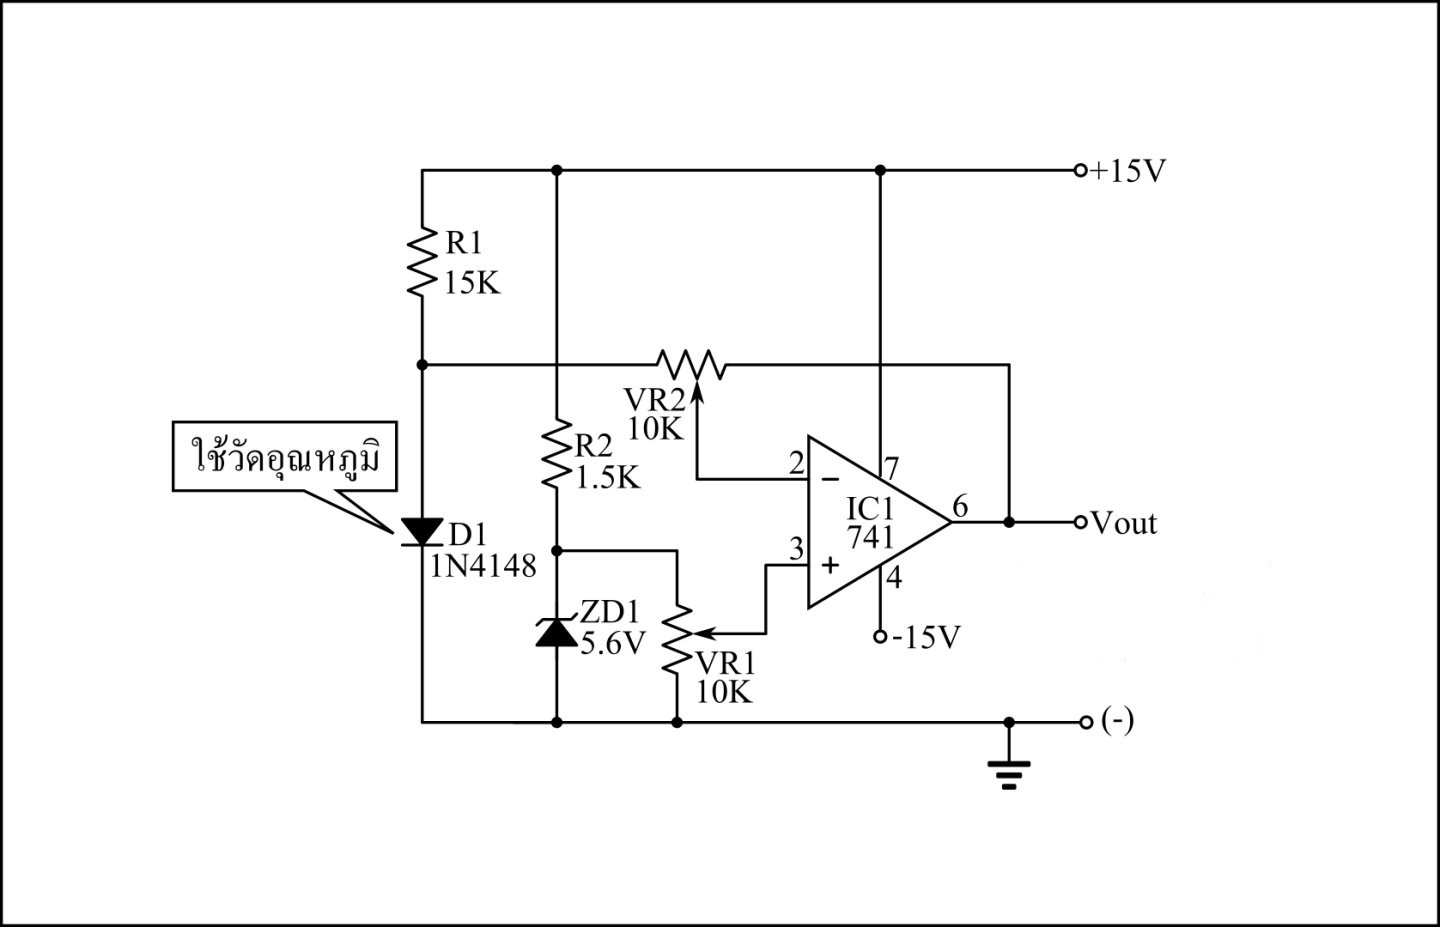 Pc Power Saver Circuit Diagram Nonstopfree Electronic Circuits Voltage Limit Detector Tradeoficcom Indicator Rh Syiah Co